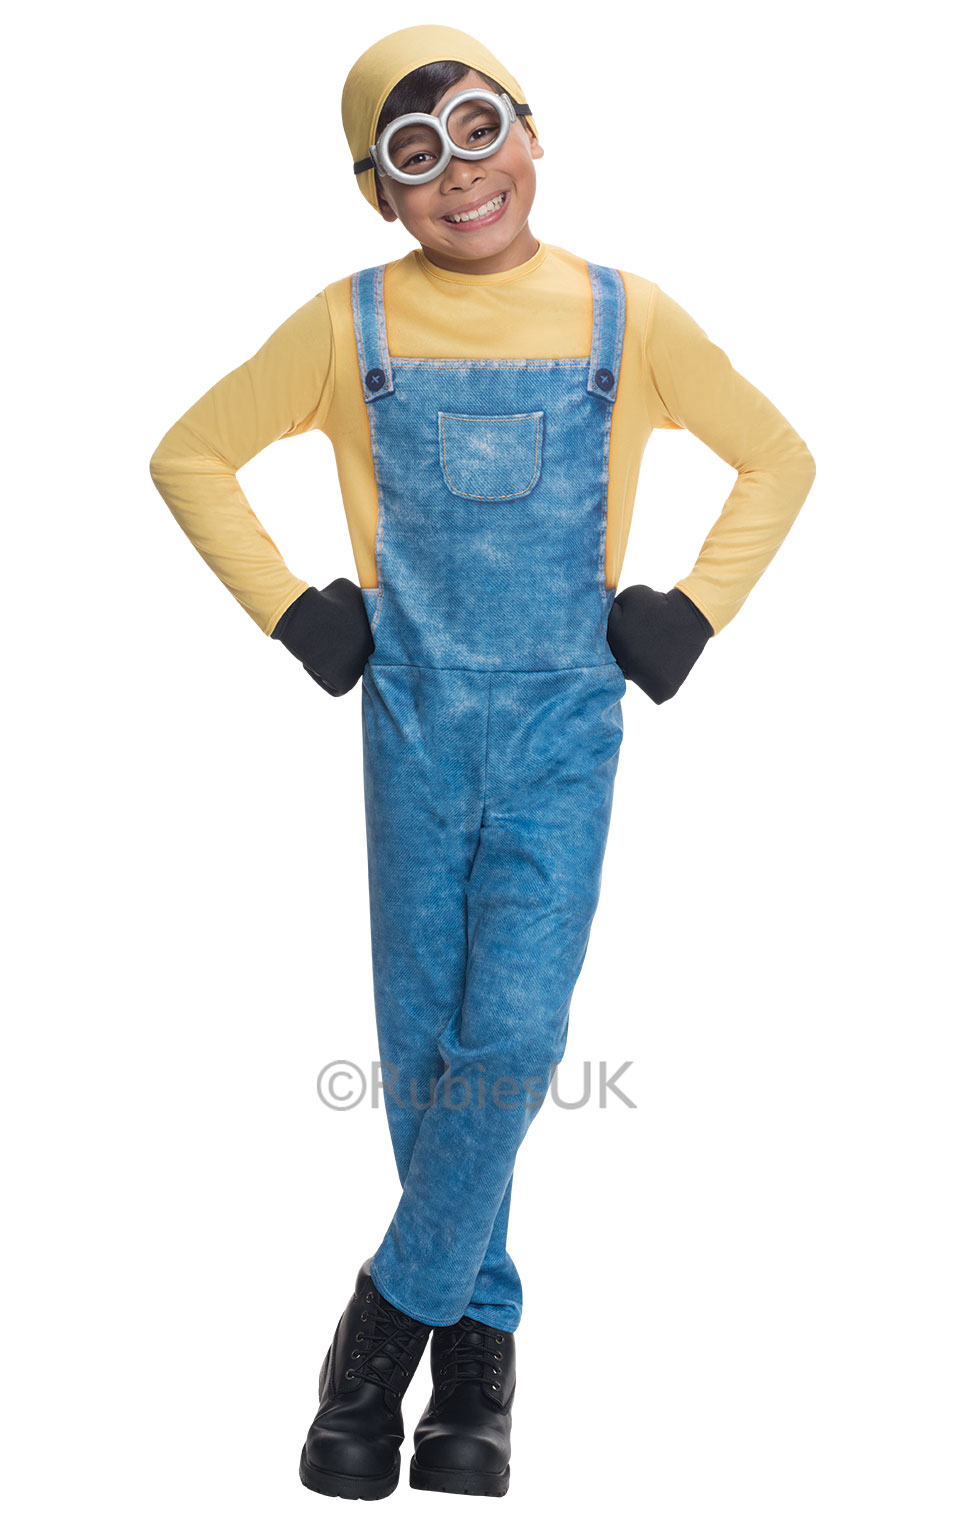 Minion Halloween Costumes For Girls.Details About Minion Girls Boys Fancy Dress Despicable Me Kids Childrens Halloween Costumes